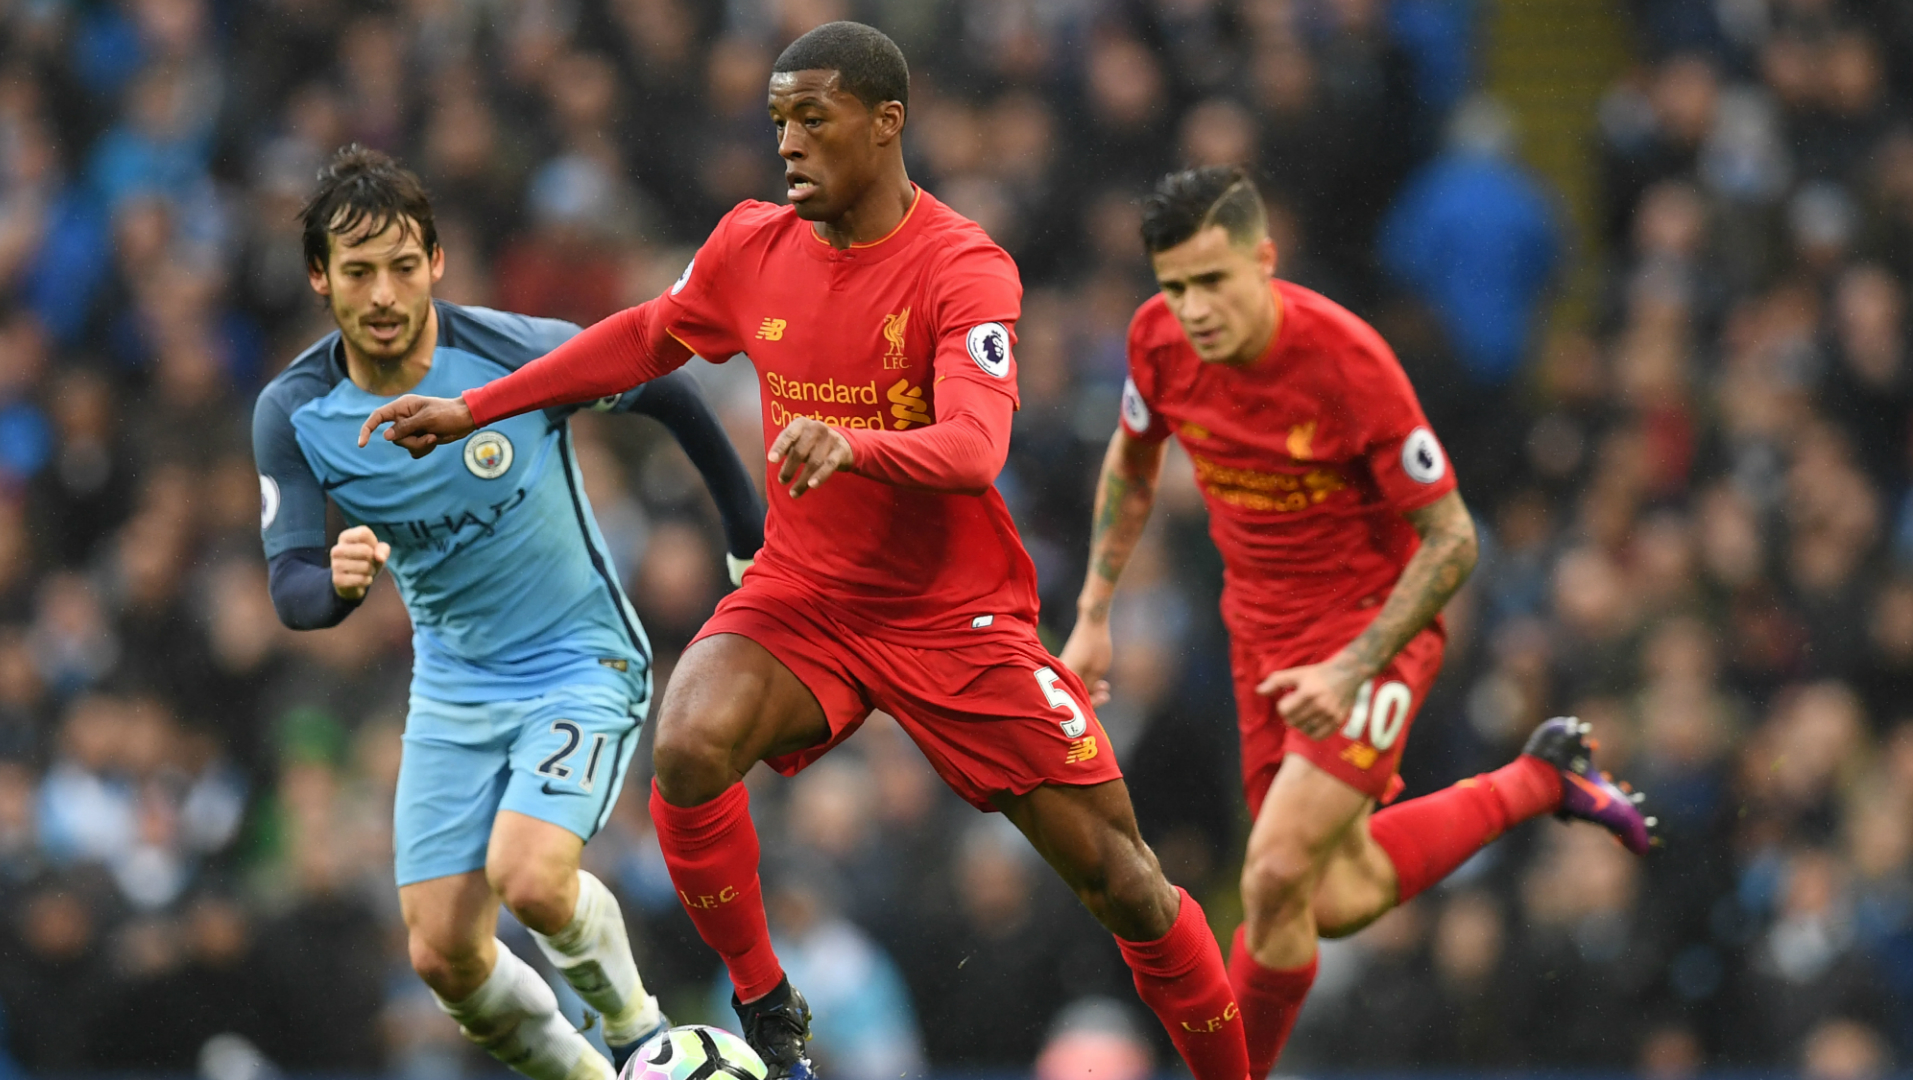 Georginio Wijnaldum, David Silva, Manchester City - Liverpool, Premier League, 03192017